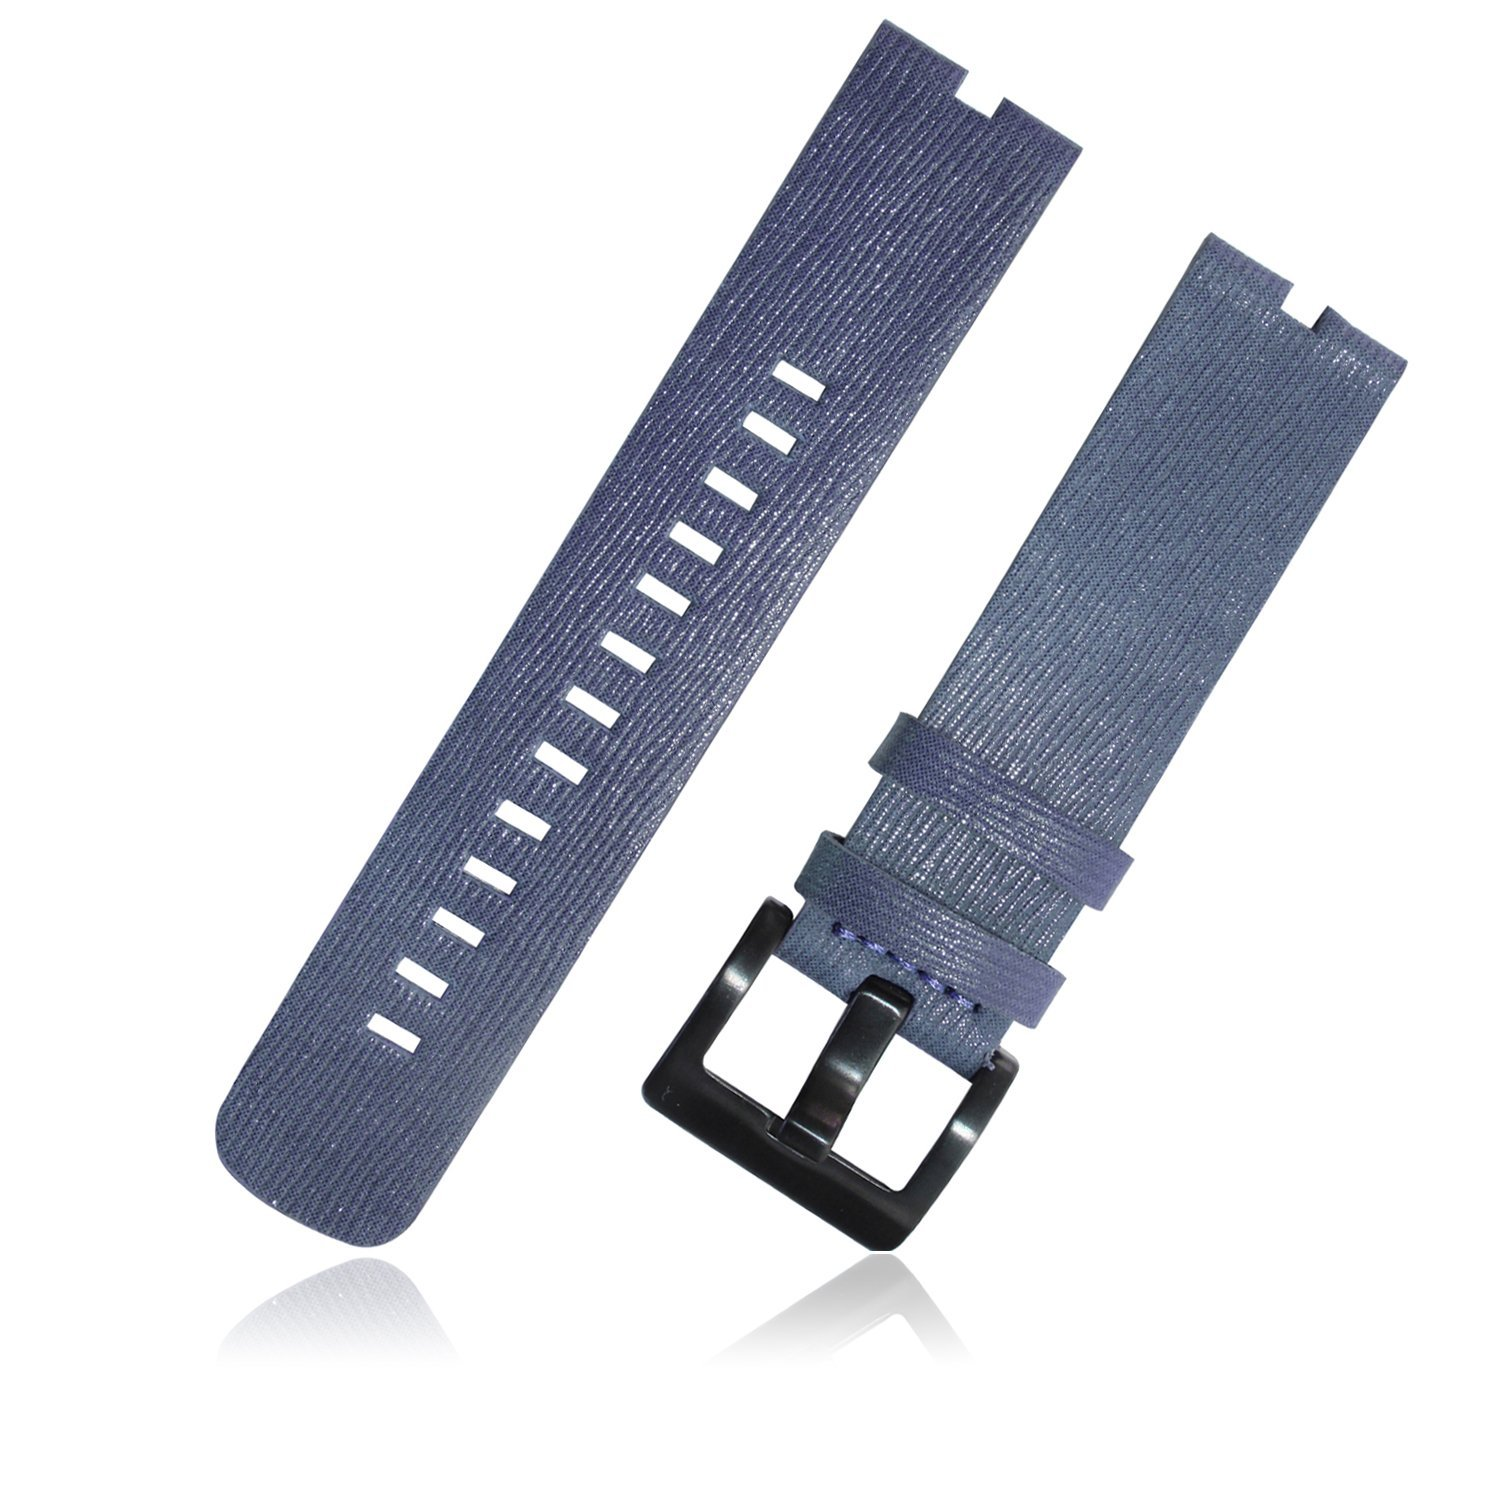 Buy Nogis Leather Watch Band Wristband Watchband Strap For Motorola Moto Smart Black 360 Moto360 Dark